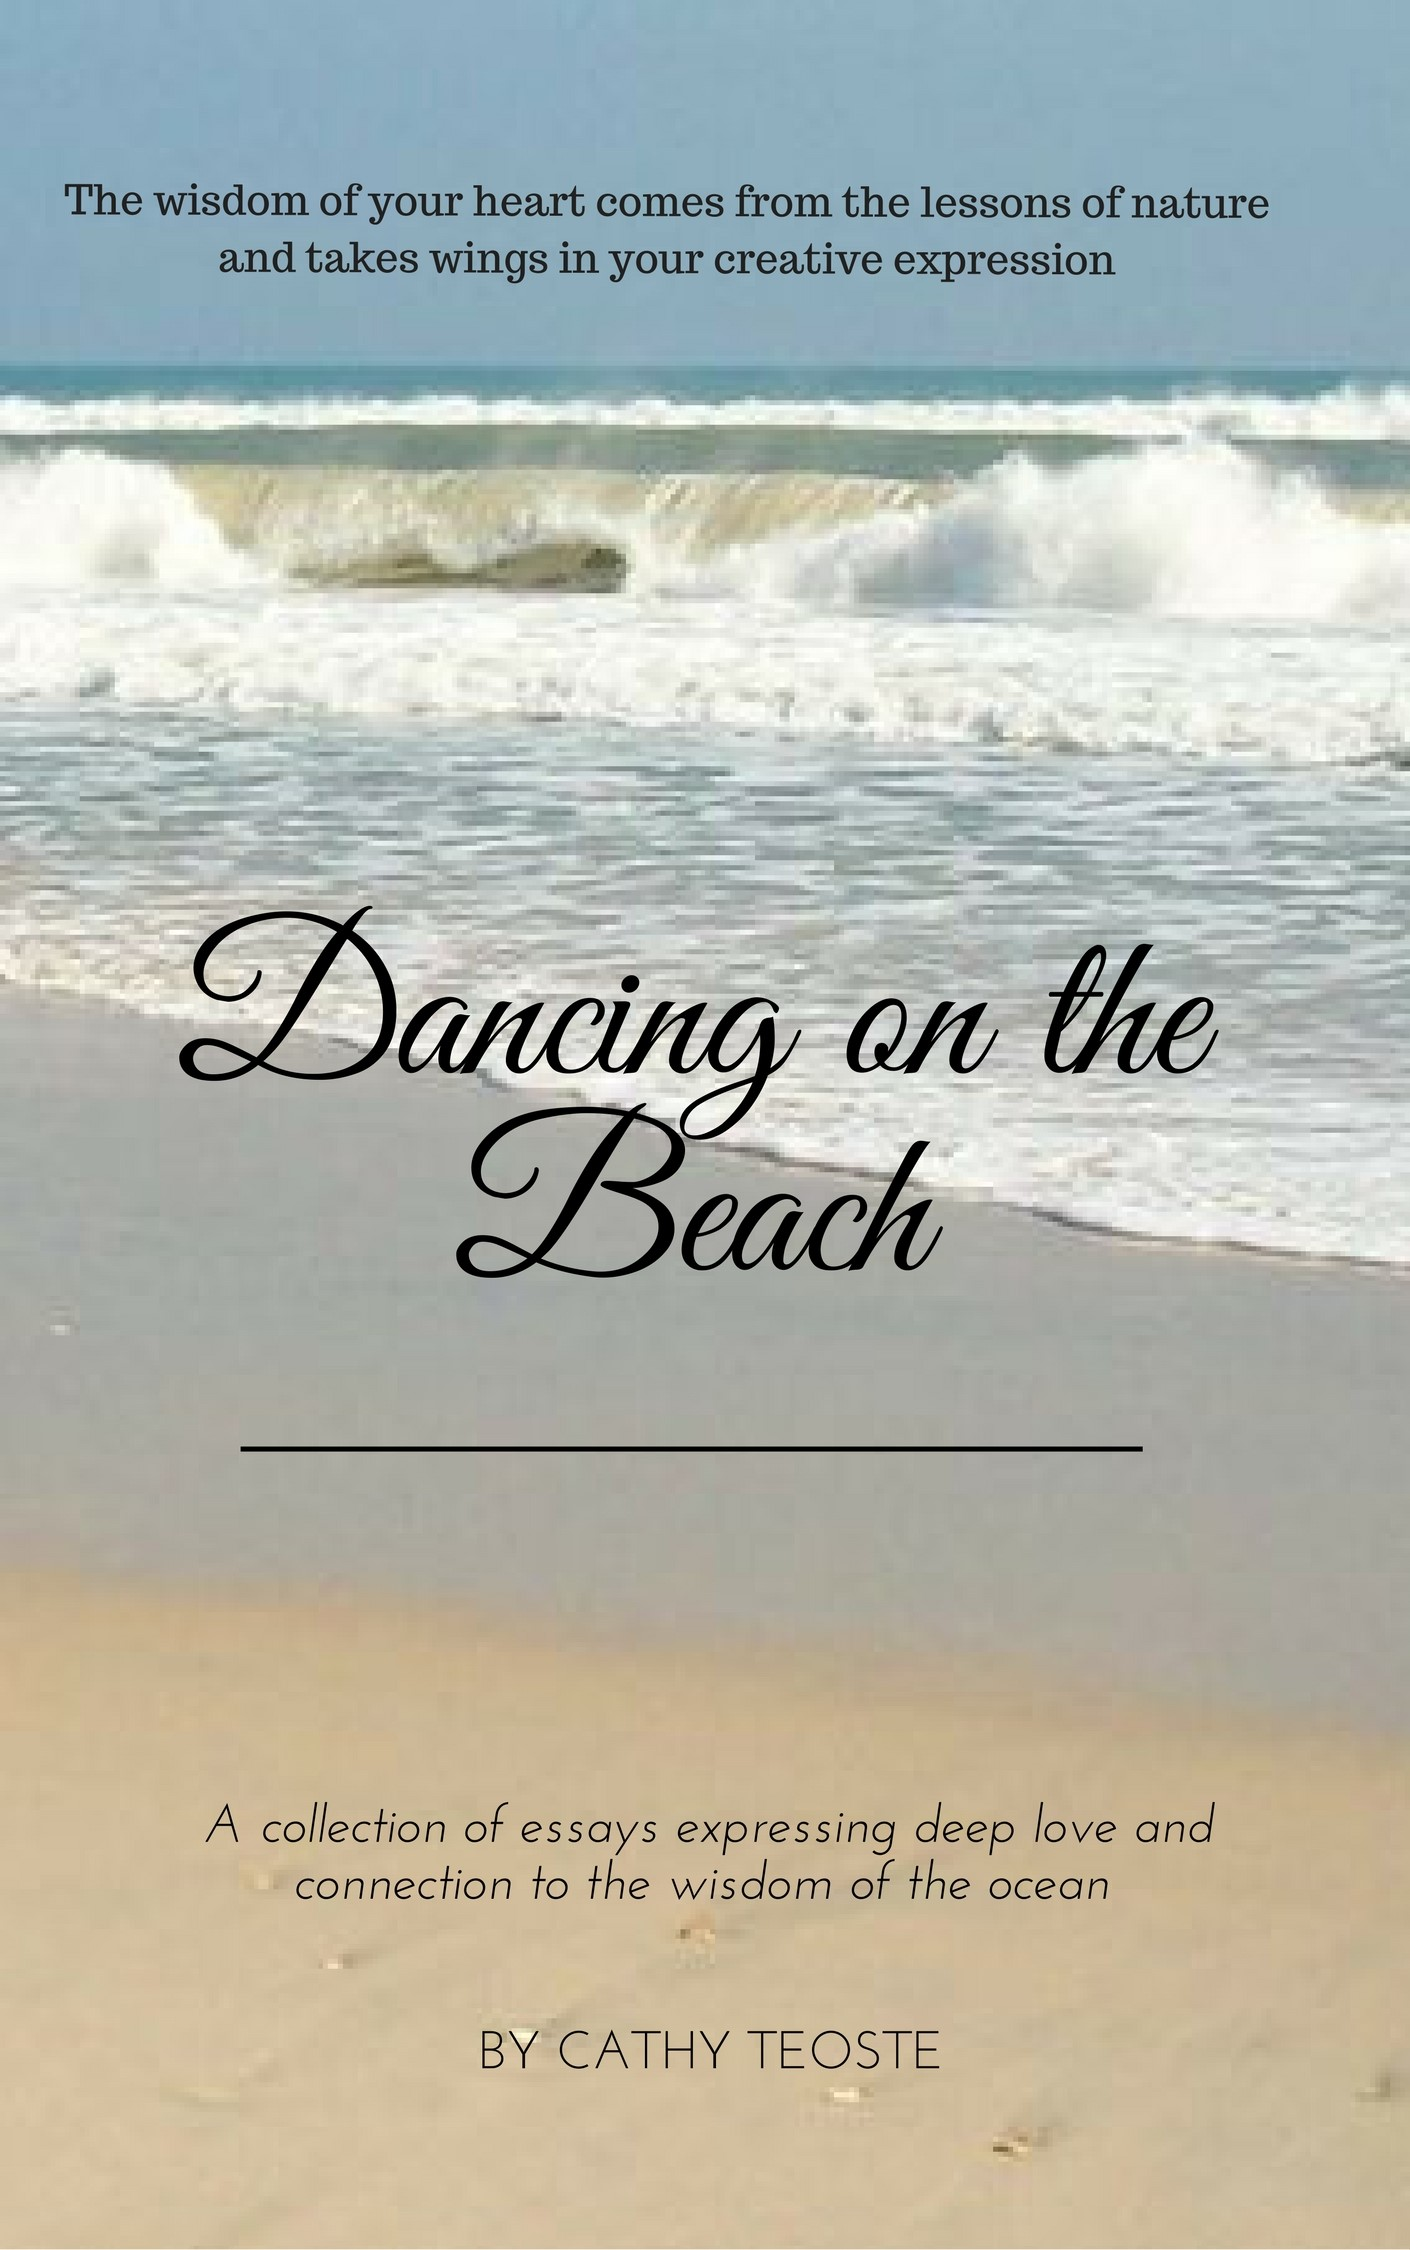 Dancing on the Beach